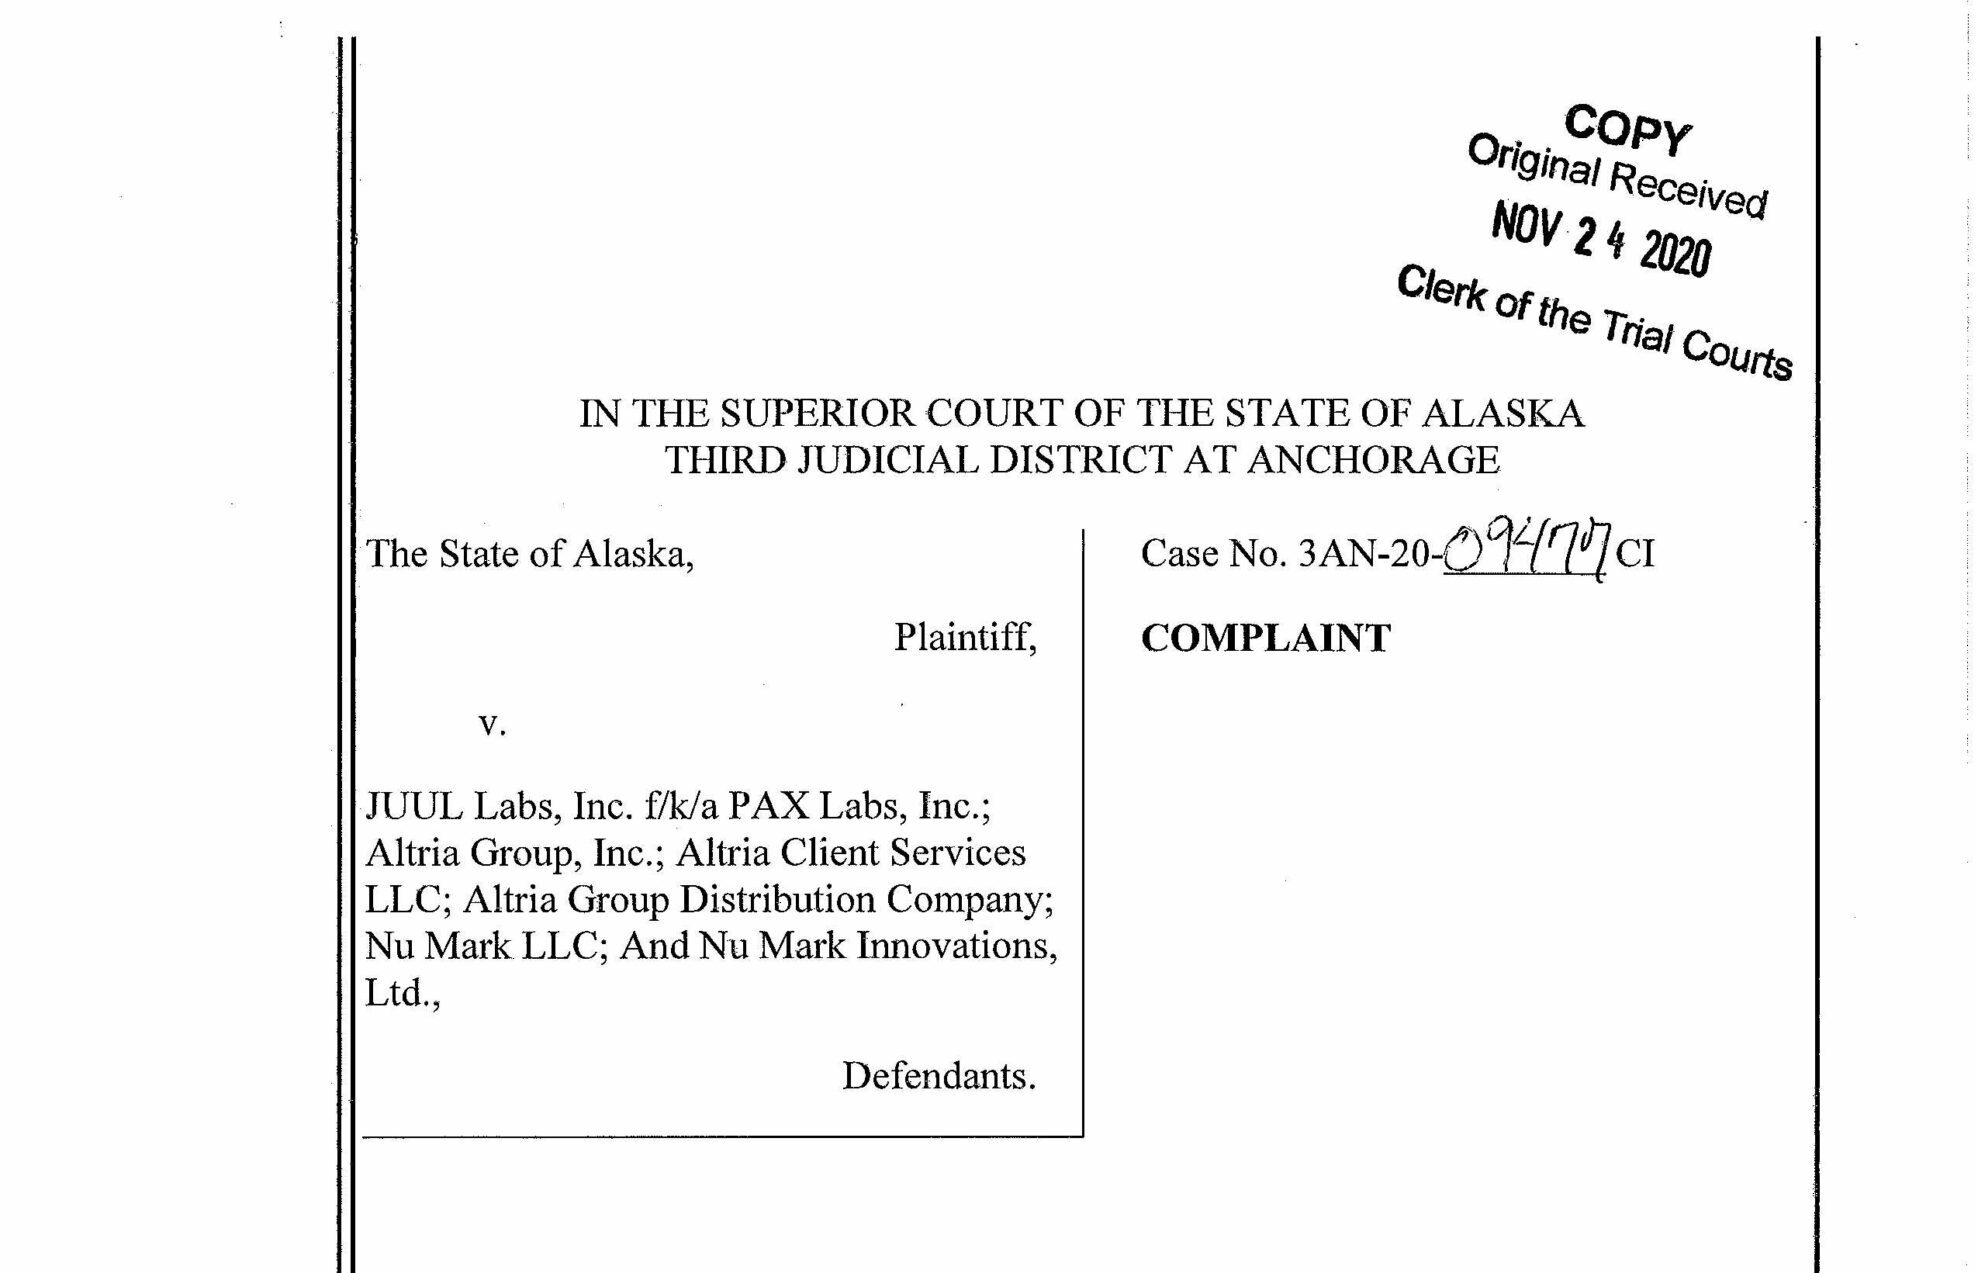 MBG Serving as Outside Counsel in Alaska E-Cigarette Litigation